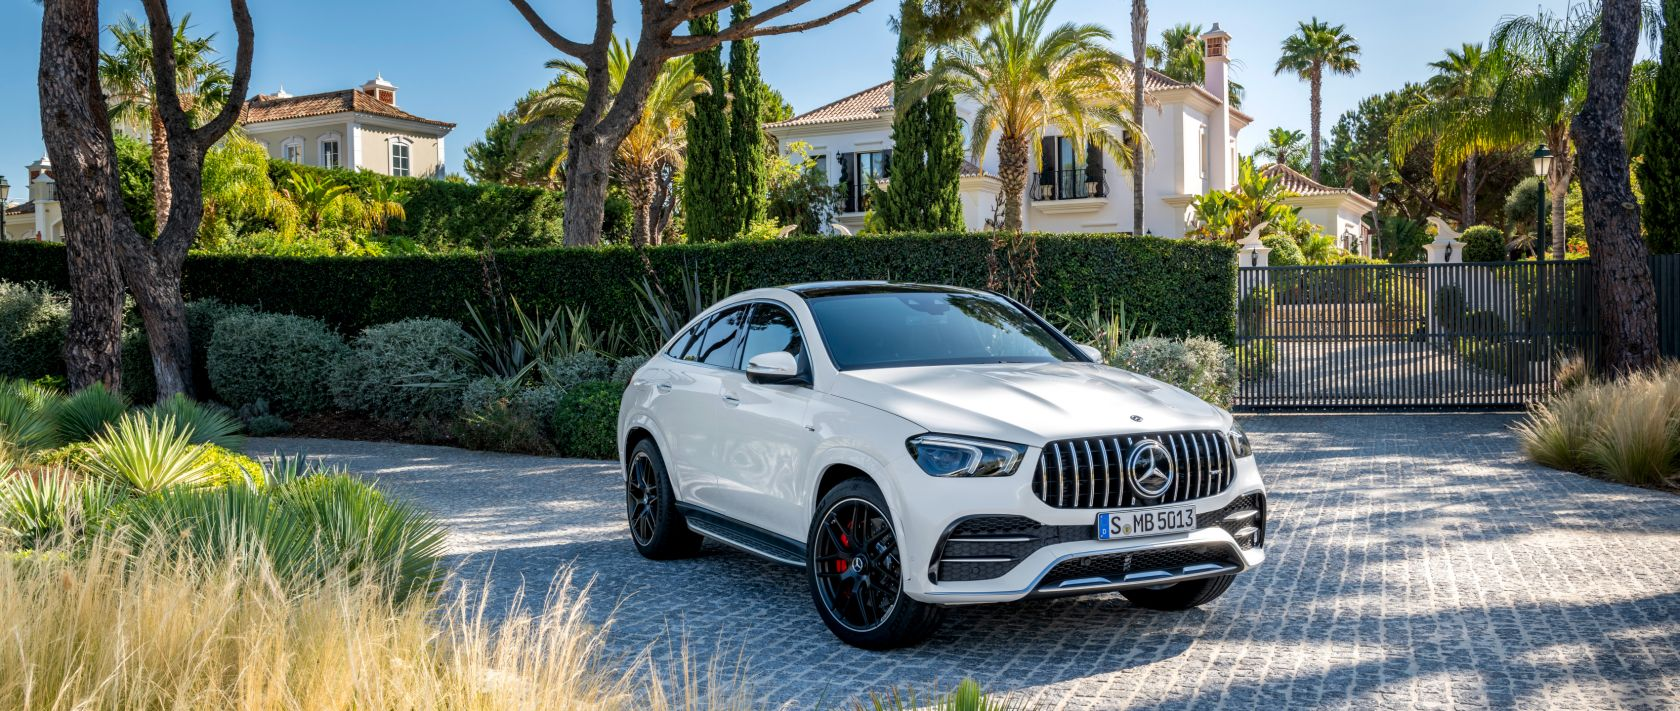 The new 2020 Mercedes-AMG GLE 53 4MATIC+ Coupé (C 167) in designo diamond white bright surrounded by palm trees.